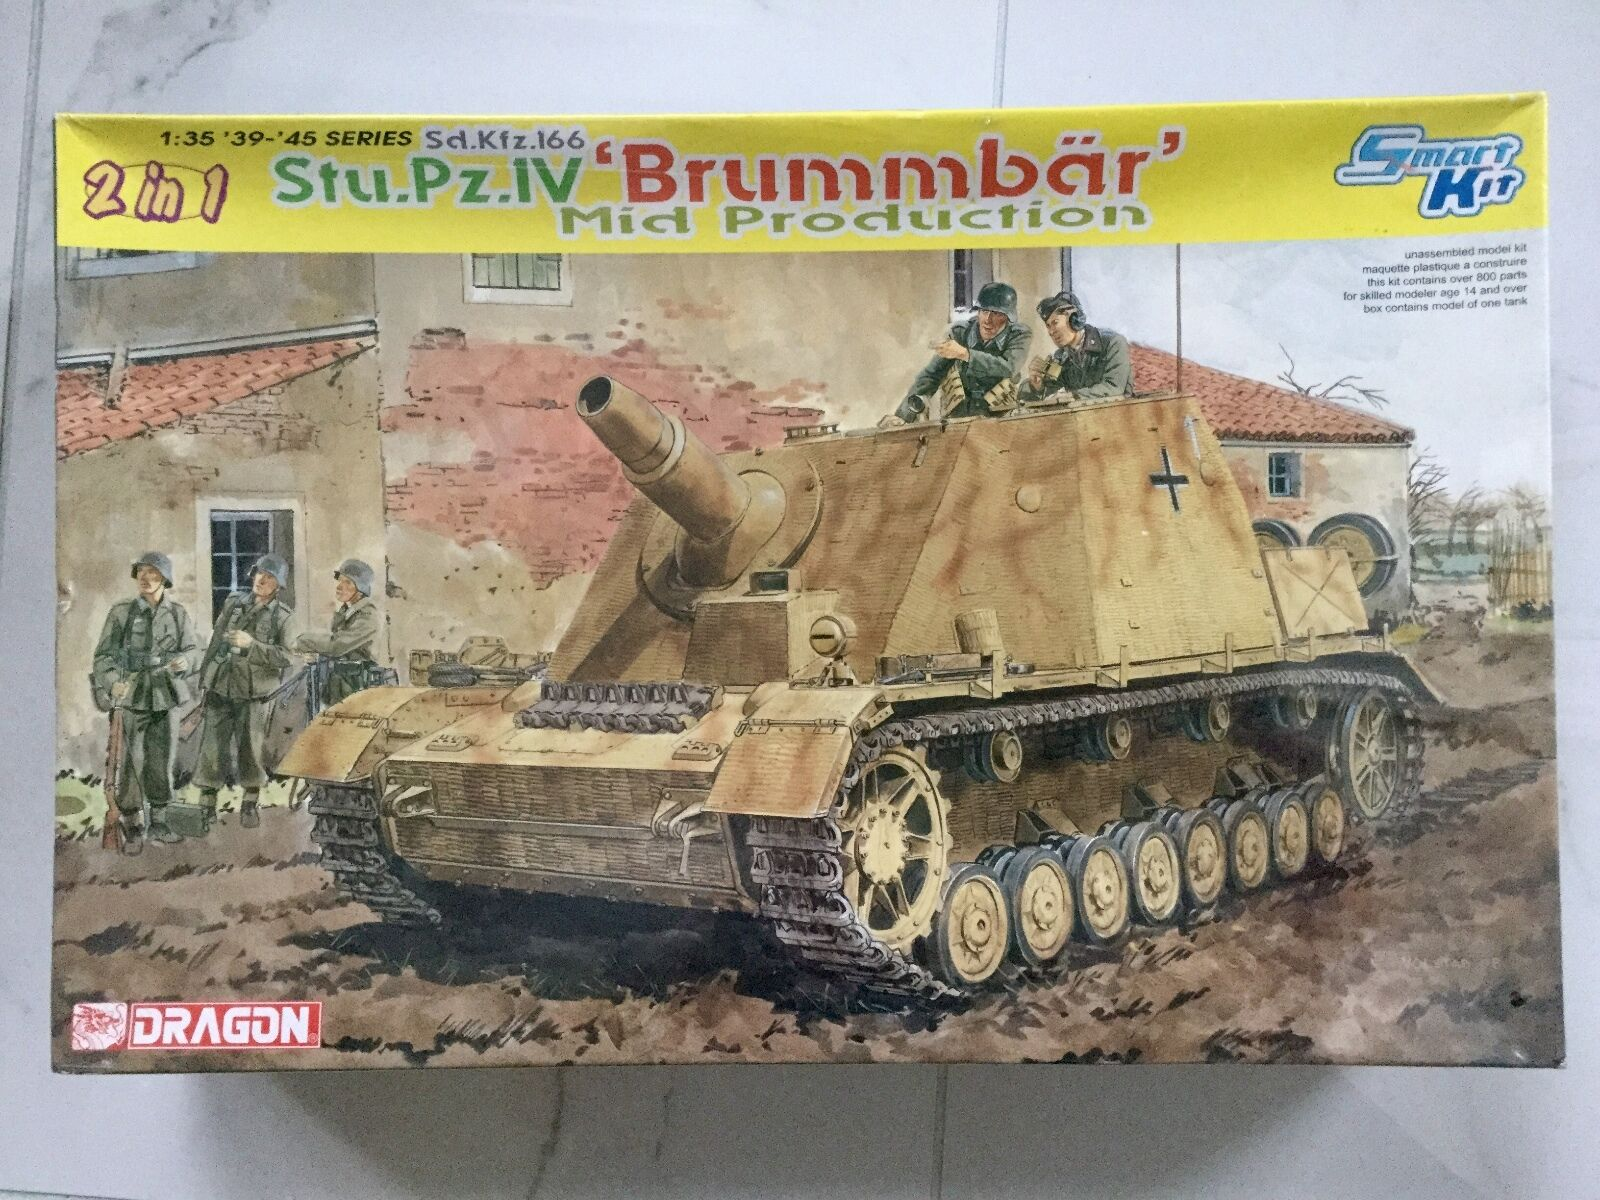 DRAGON 1 35 WW II GERMAN SD.KFZ.166 STU PZ.IV BRUMMBAR 2N1 SMART KIT F S